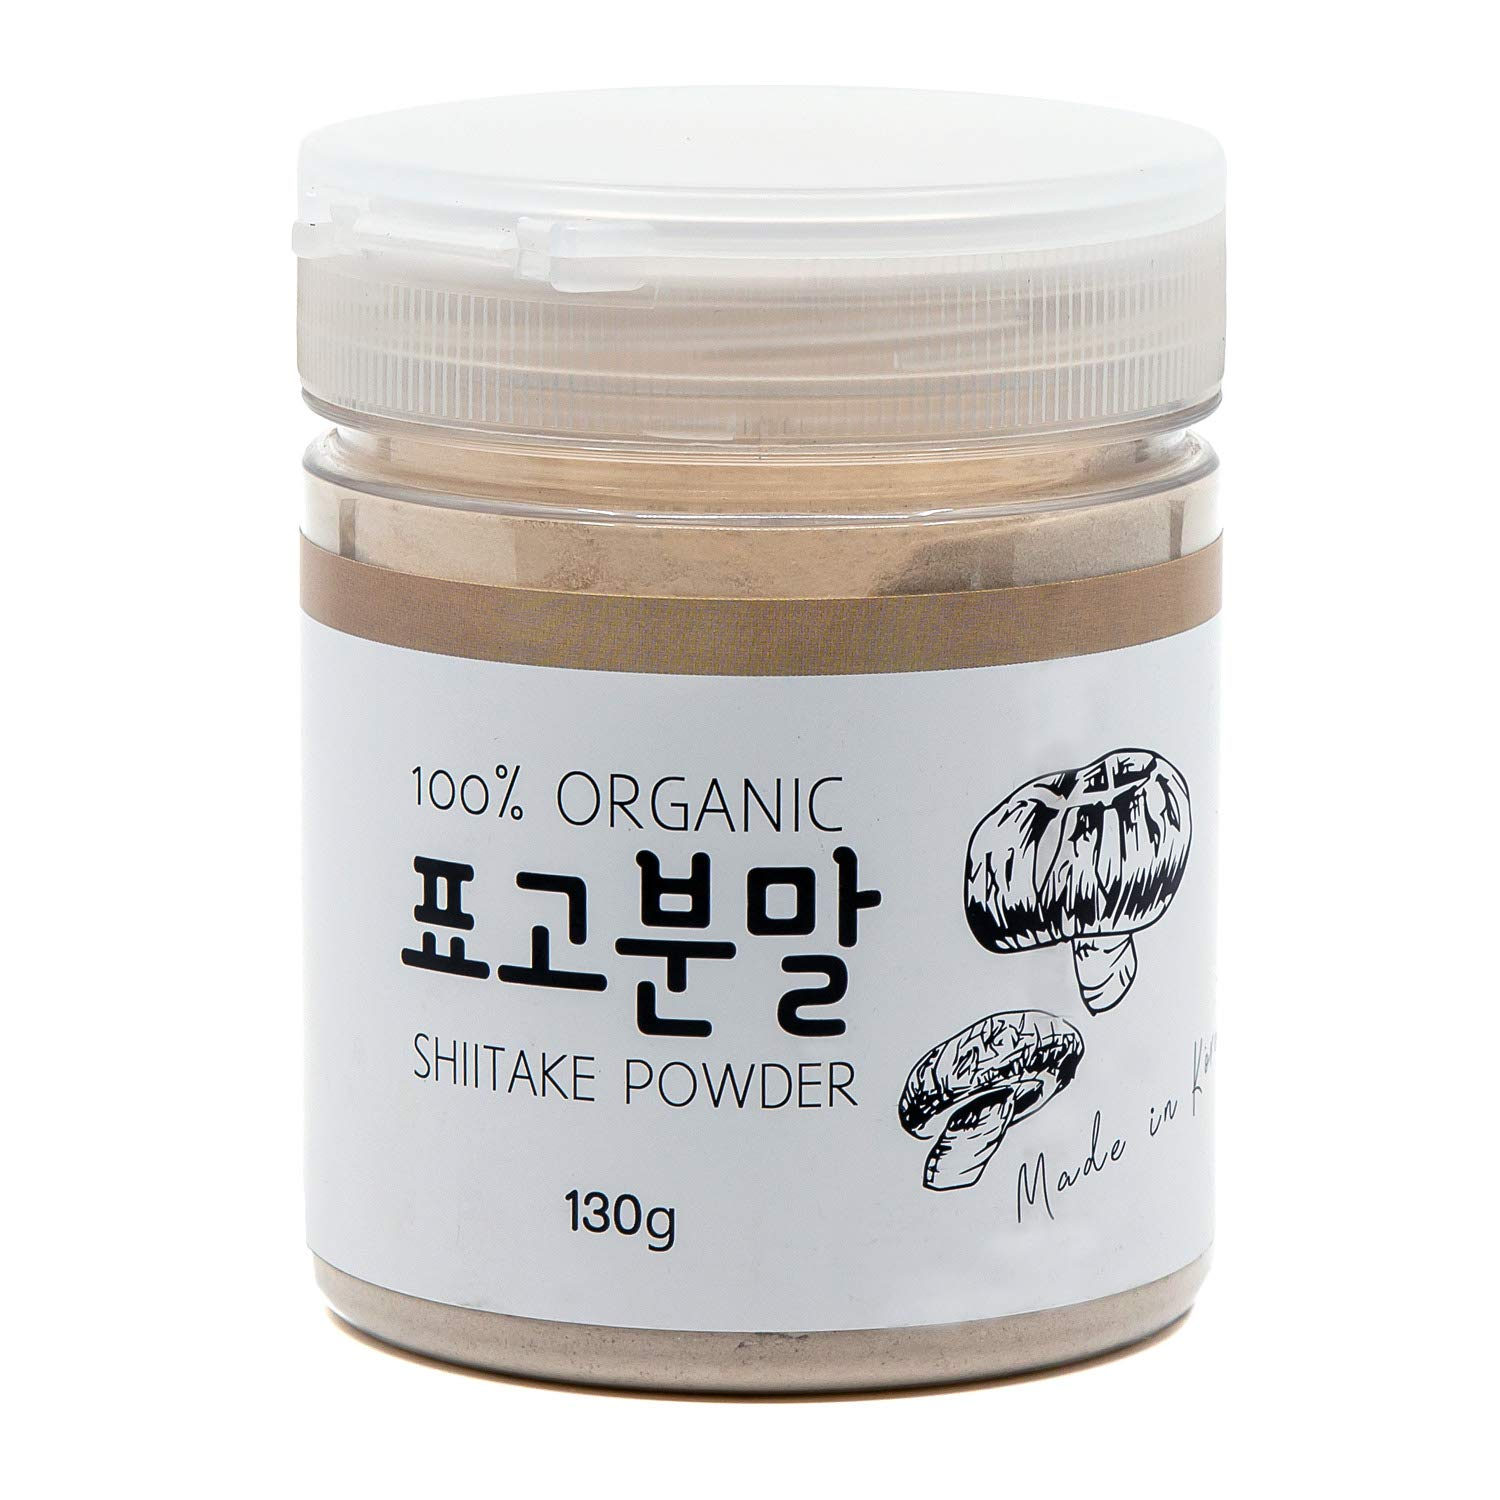 Organic Korean Shiitake Mushroom Powder [ Korean Foods ] All Natural Seasoning, Vegan Powder for Cooking, No MSG [ JRND FOODS ] 130g